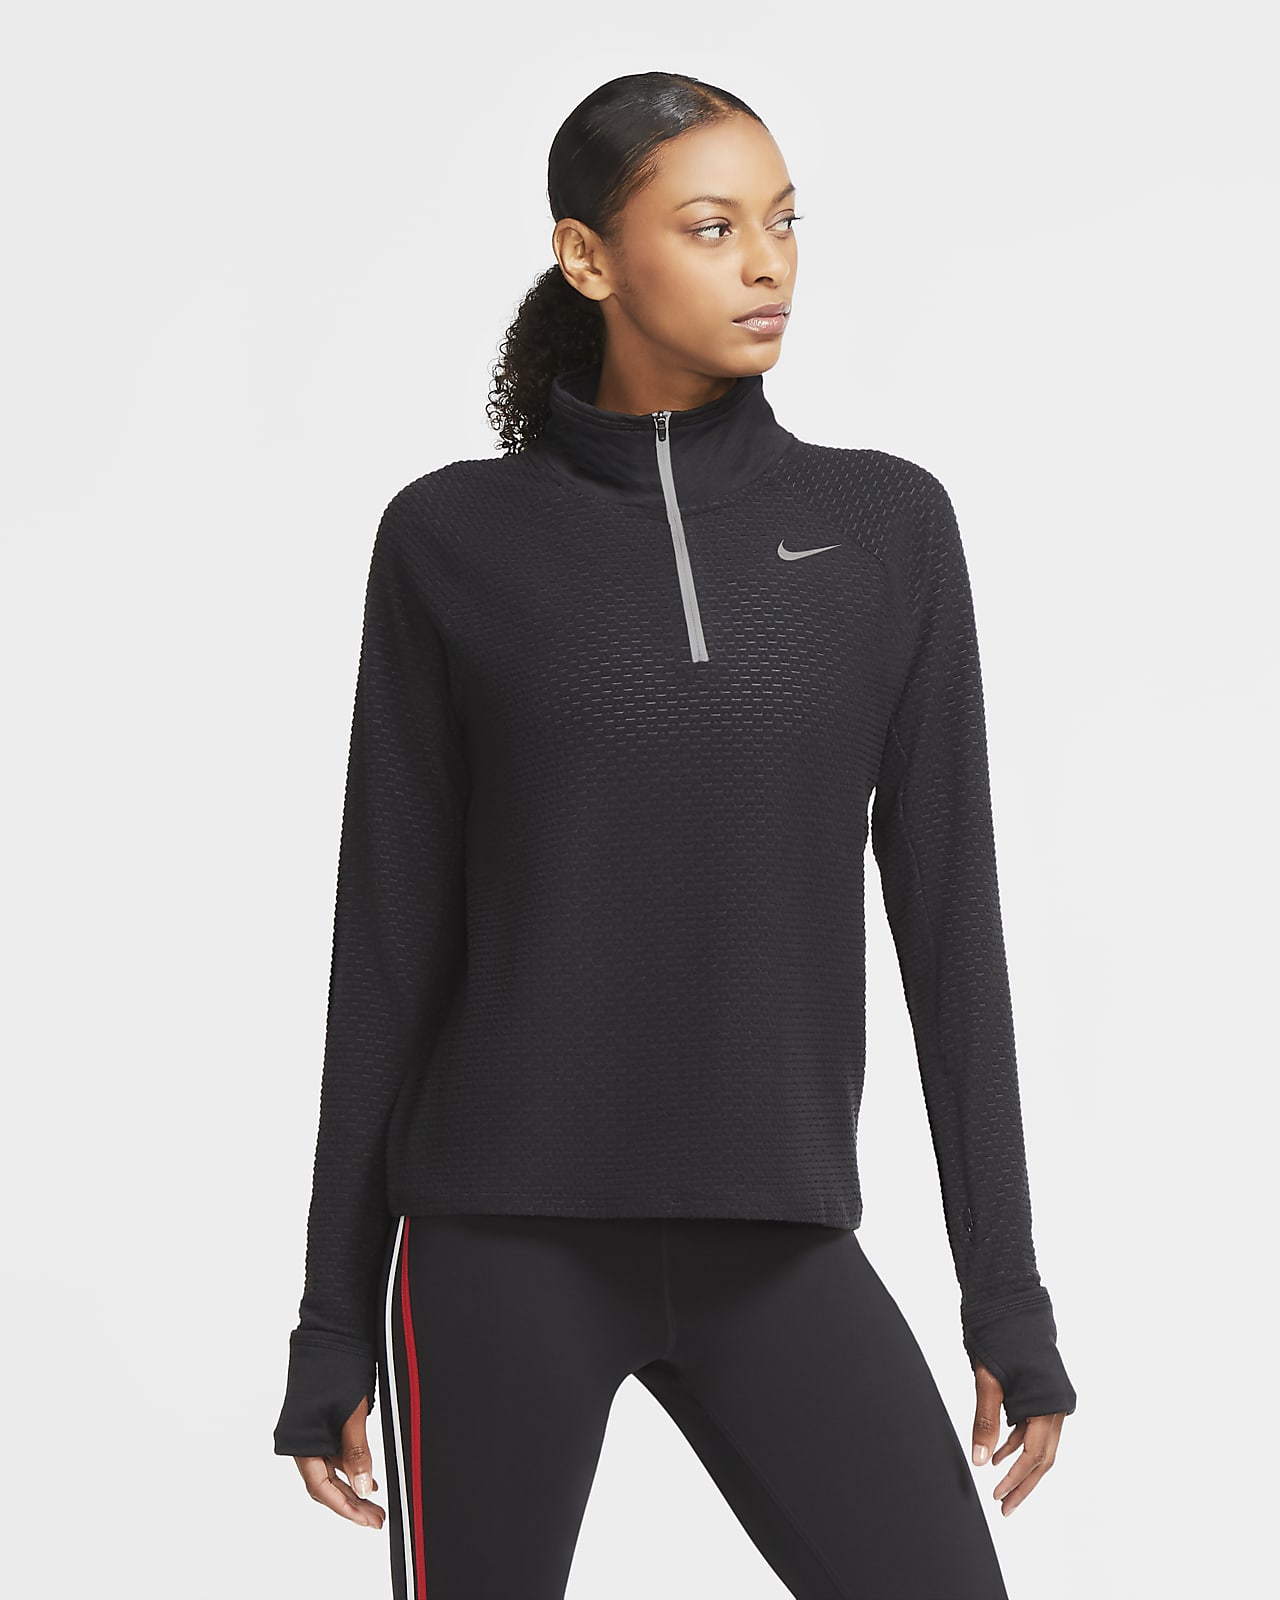 Nike Sphere Women's 1/2-Zip Running Top